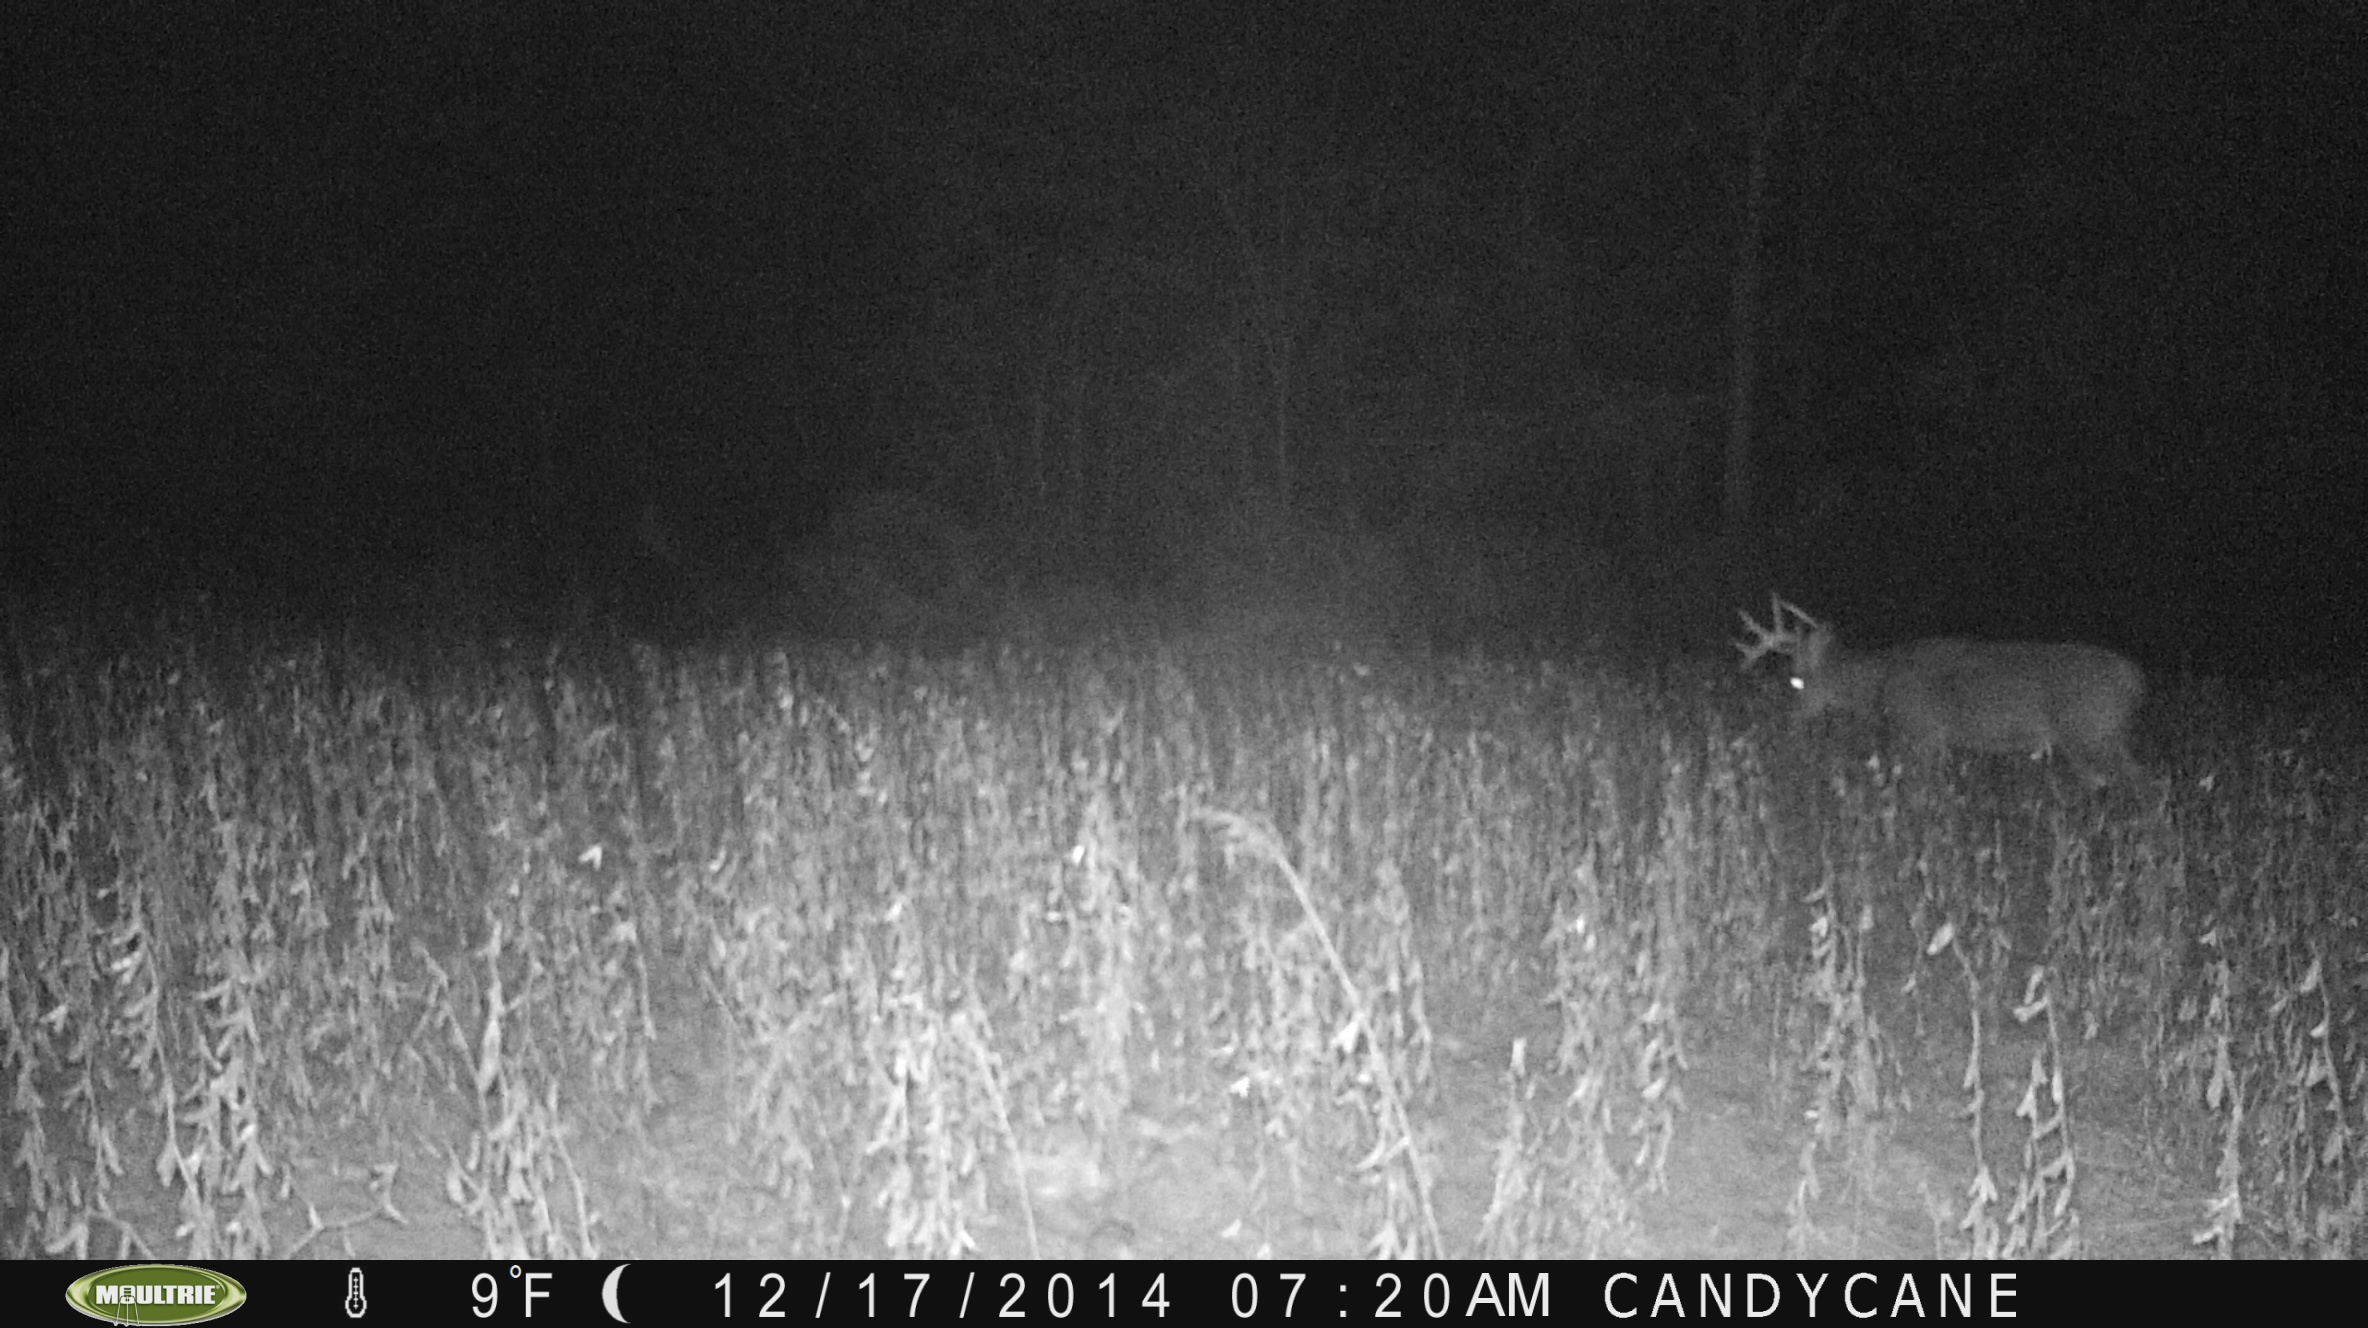 Captain Jack.  Captain has been on the farm since I bought it.  He is a very nice 5 or 6 year old buck.  This year, very early on, he broke his right G2 buck broken tines don't deter us from harvesting a mature brute.  I saw this buck December 5th while sitting out glassing the farm.  He came out well before dark and fed into a soybean plot.  We have many pictures of him late this year.